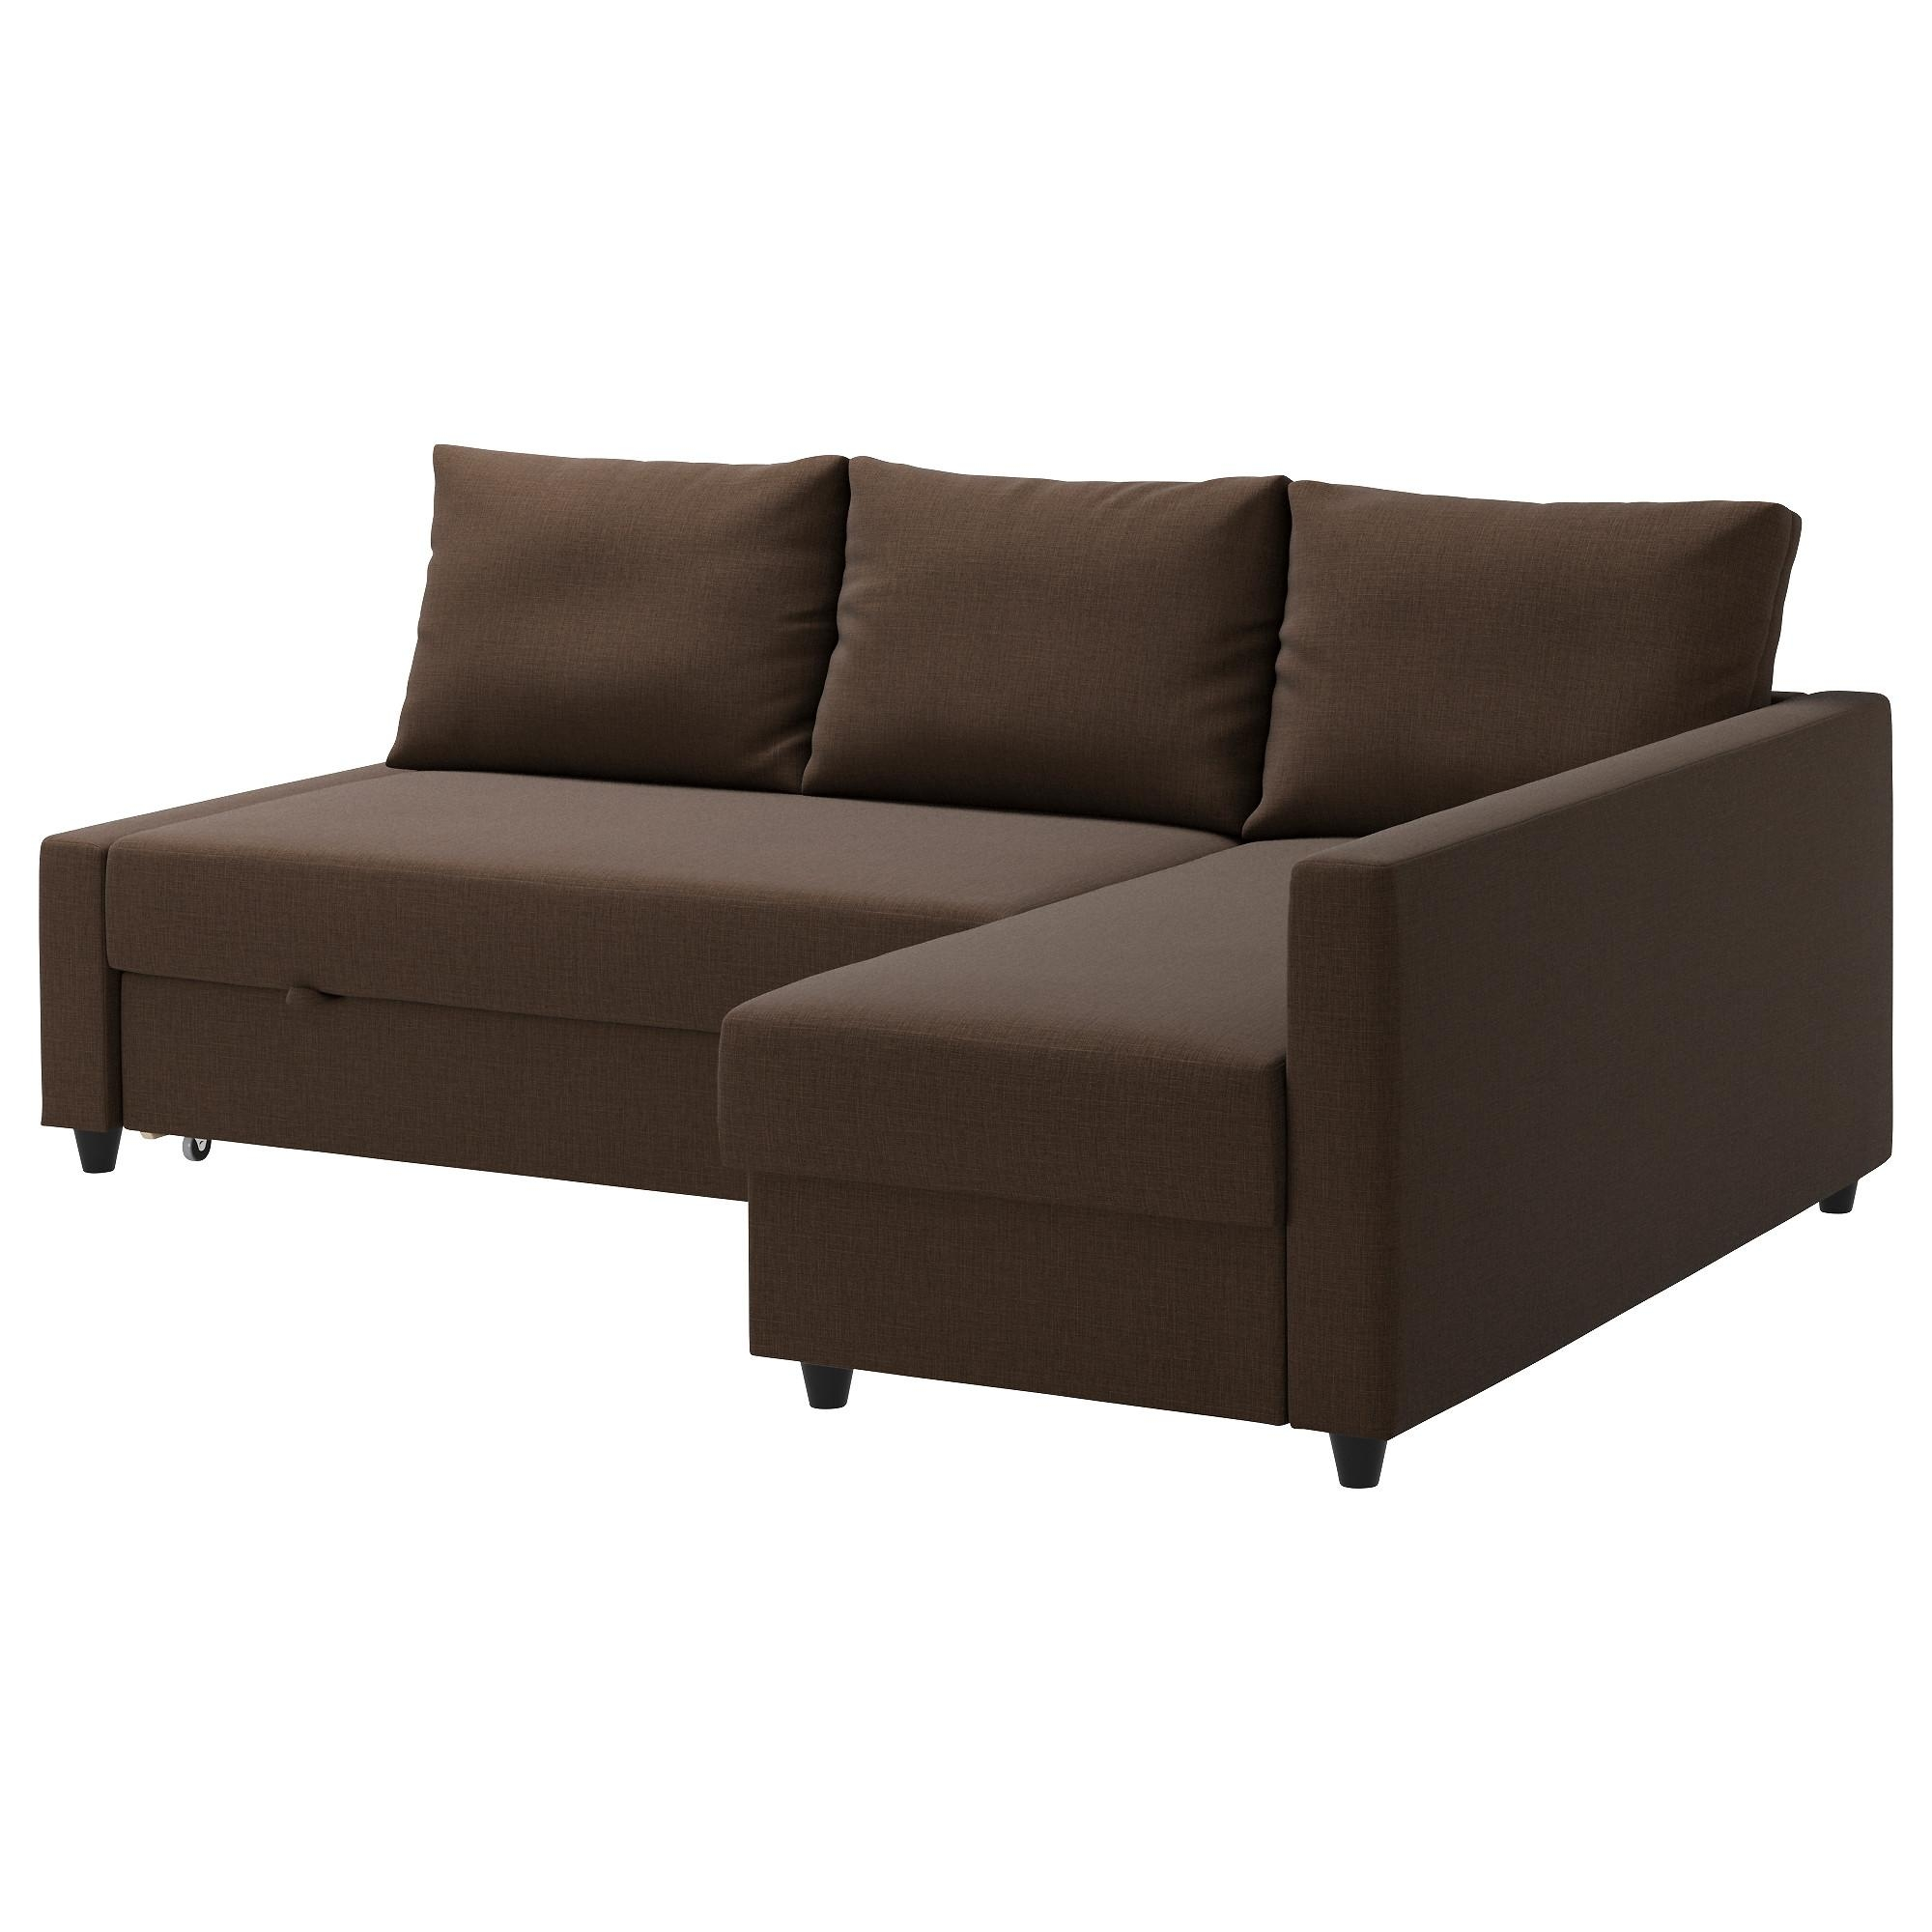 Friheten Corner Sofa Bed With Storage Skiftebo Brown – Ikea With Regard To Storage Sofas Ikea (Image 8 of 20)